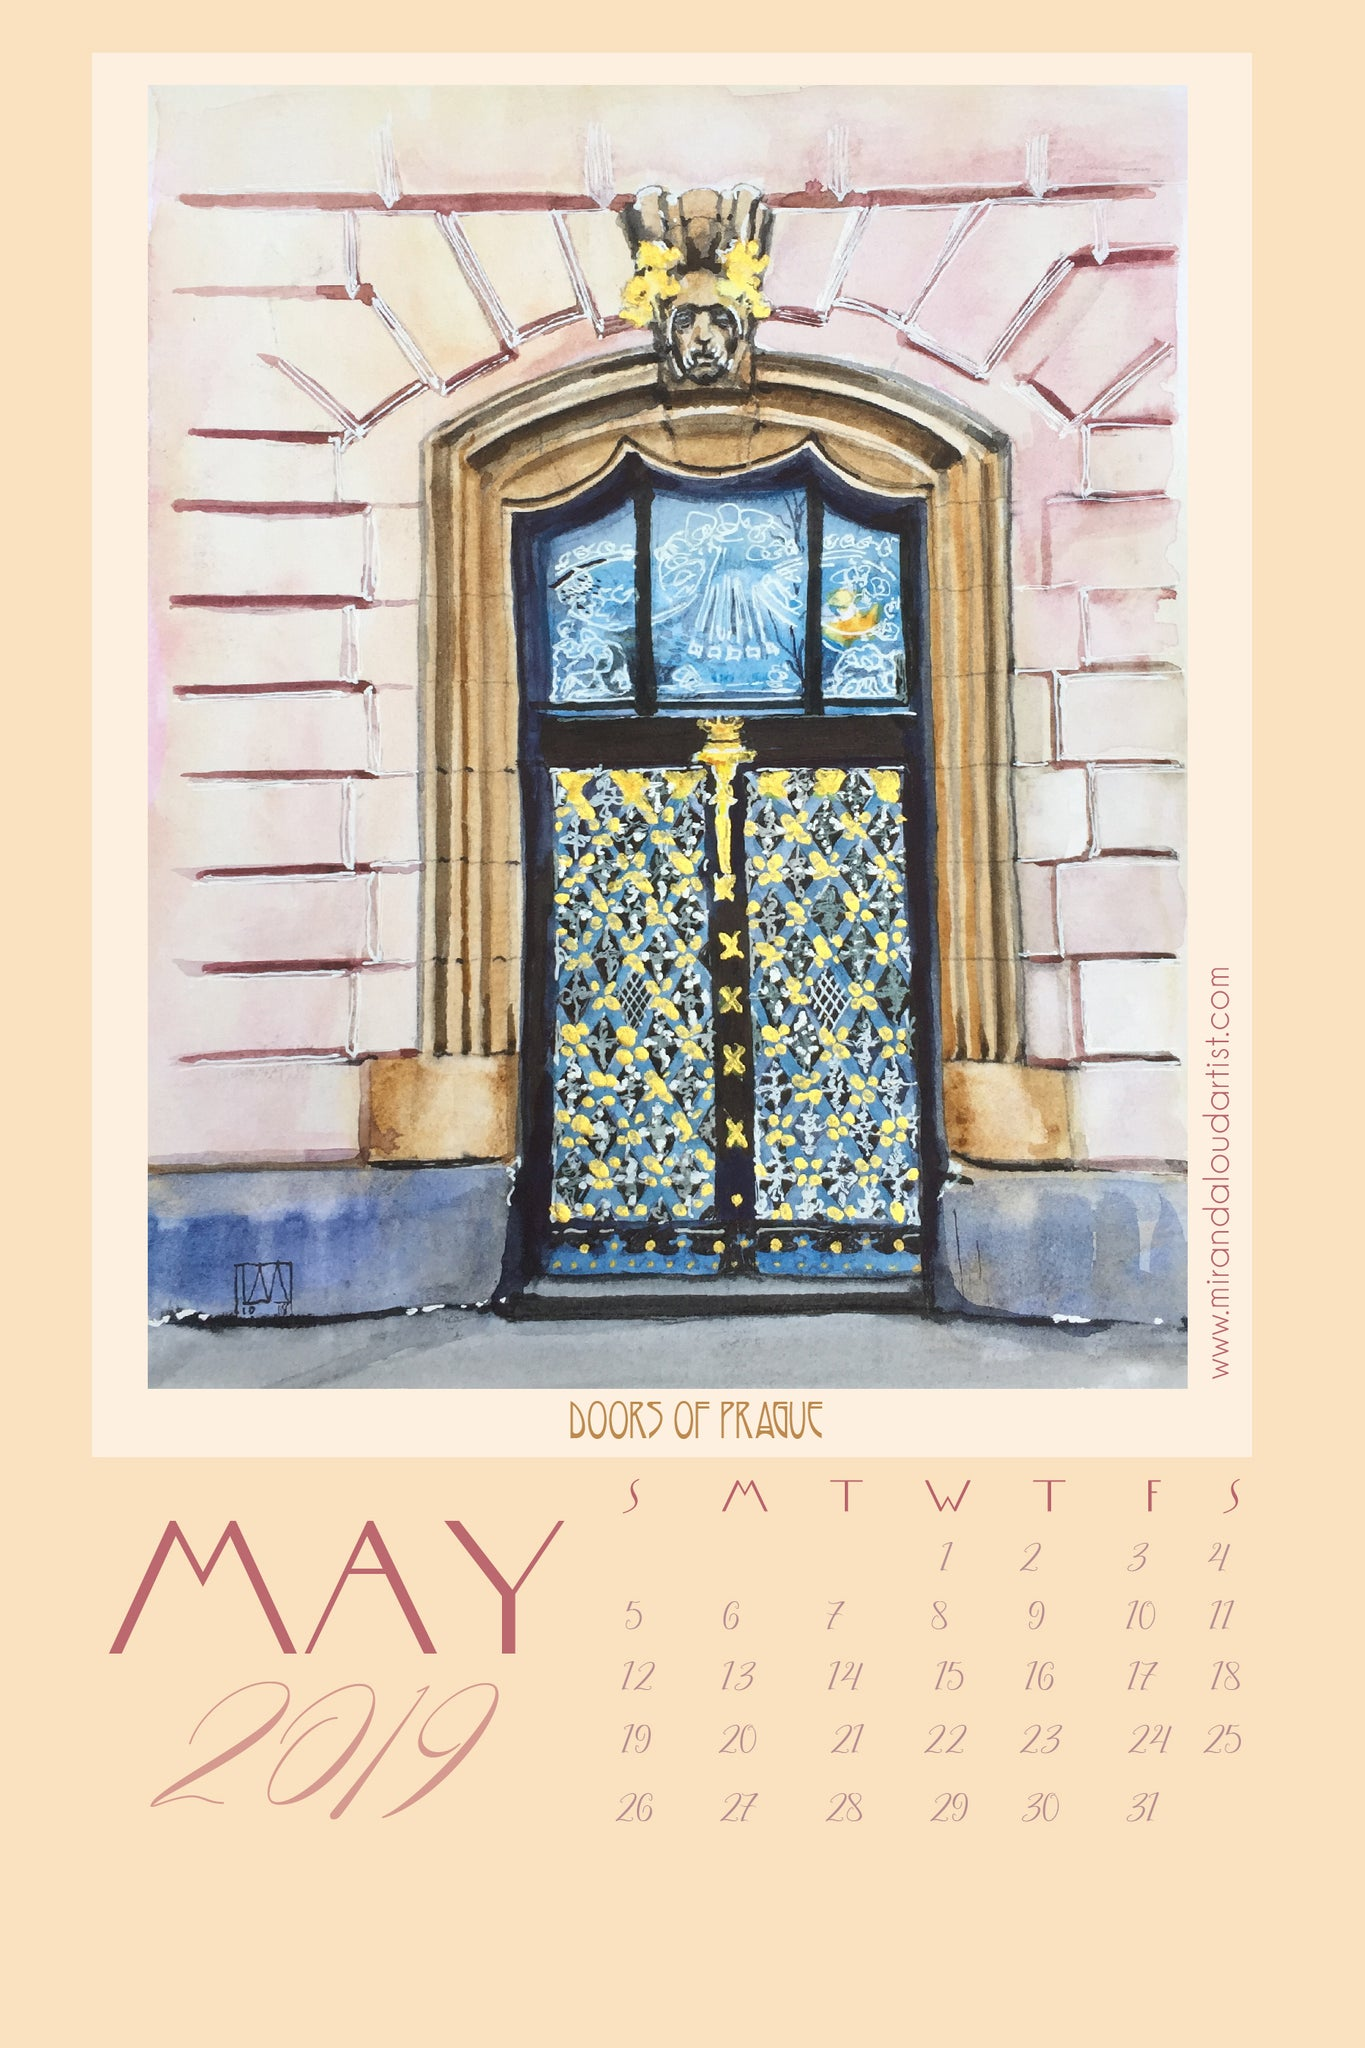 2019 Doors of Prague Desk Calendar - Watercolors by Miranda Loud